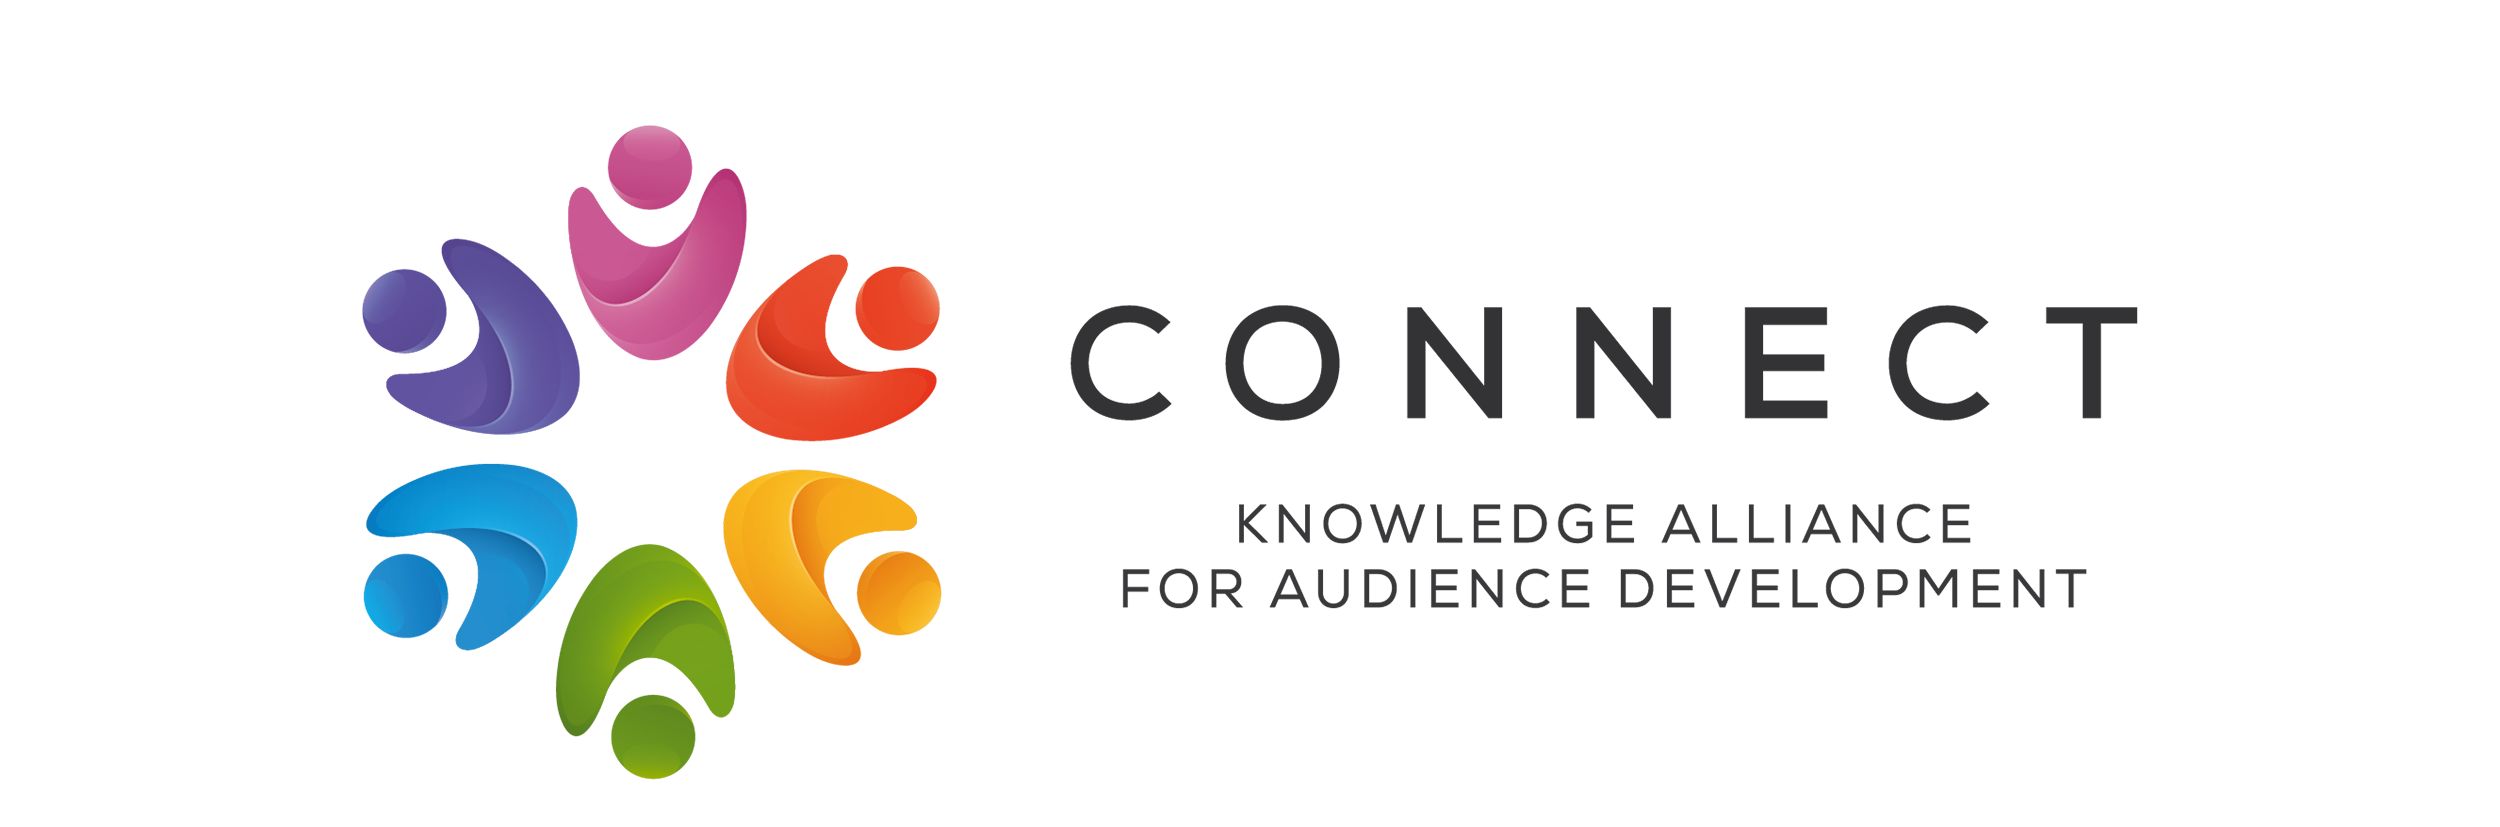 logo-connect.png